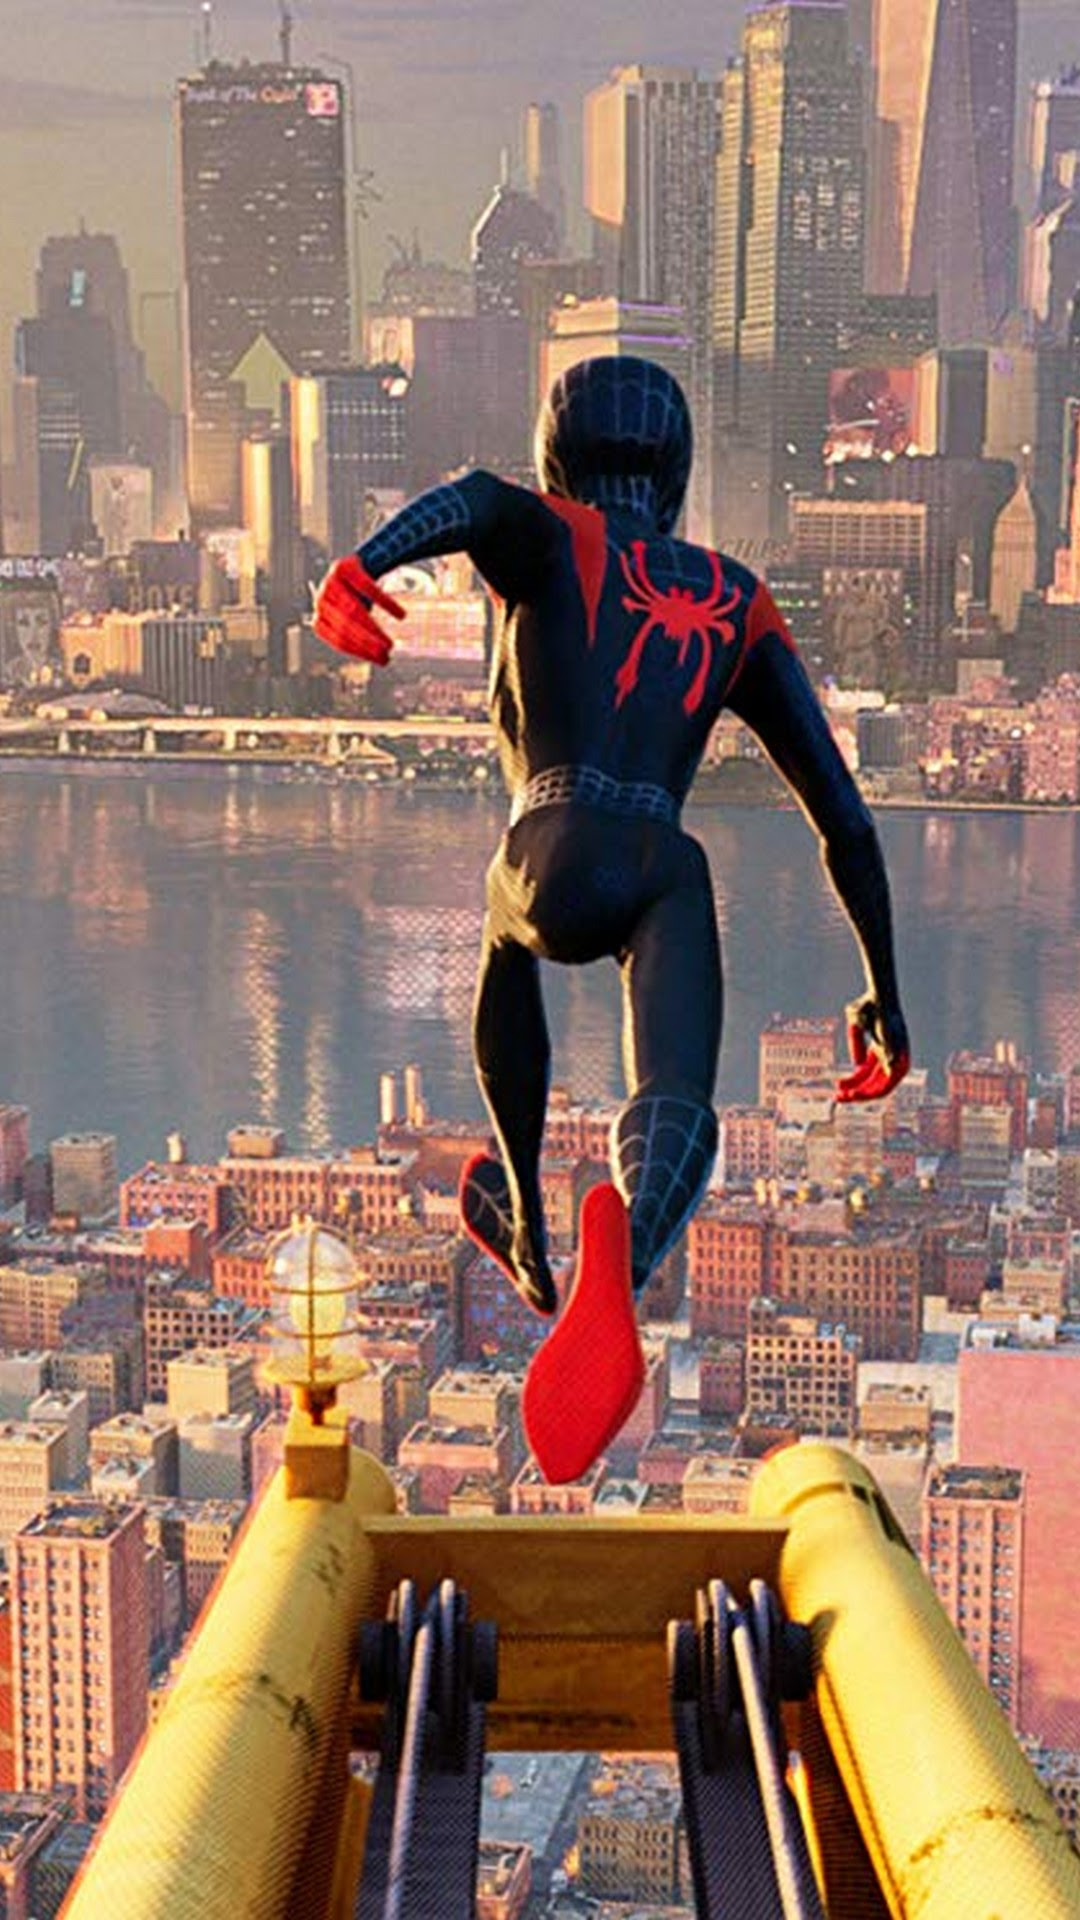 Anime Images Spider Man Into The Spider Verse Wallpaper Hd Download